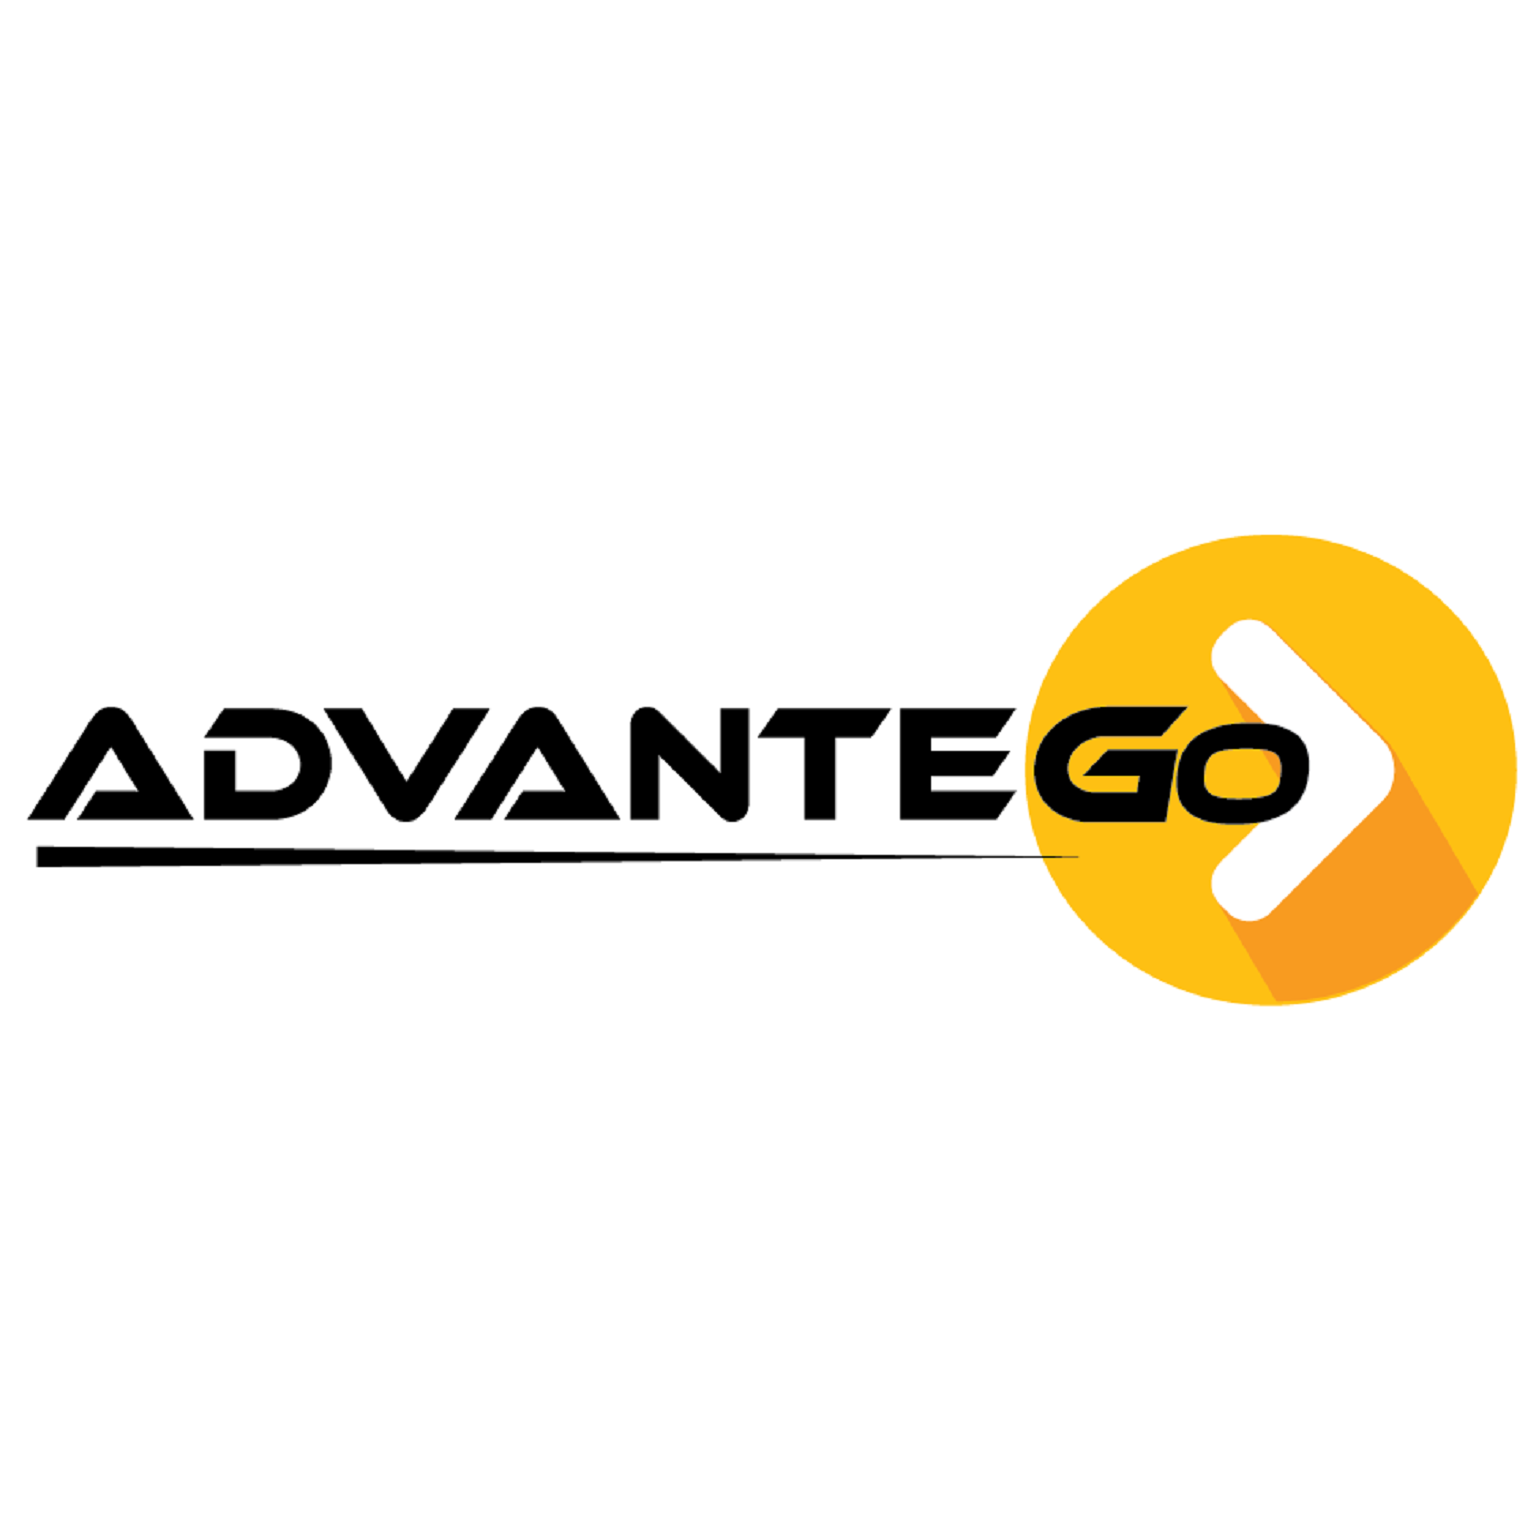 Advantego Corporation